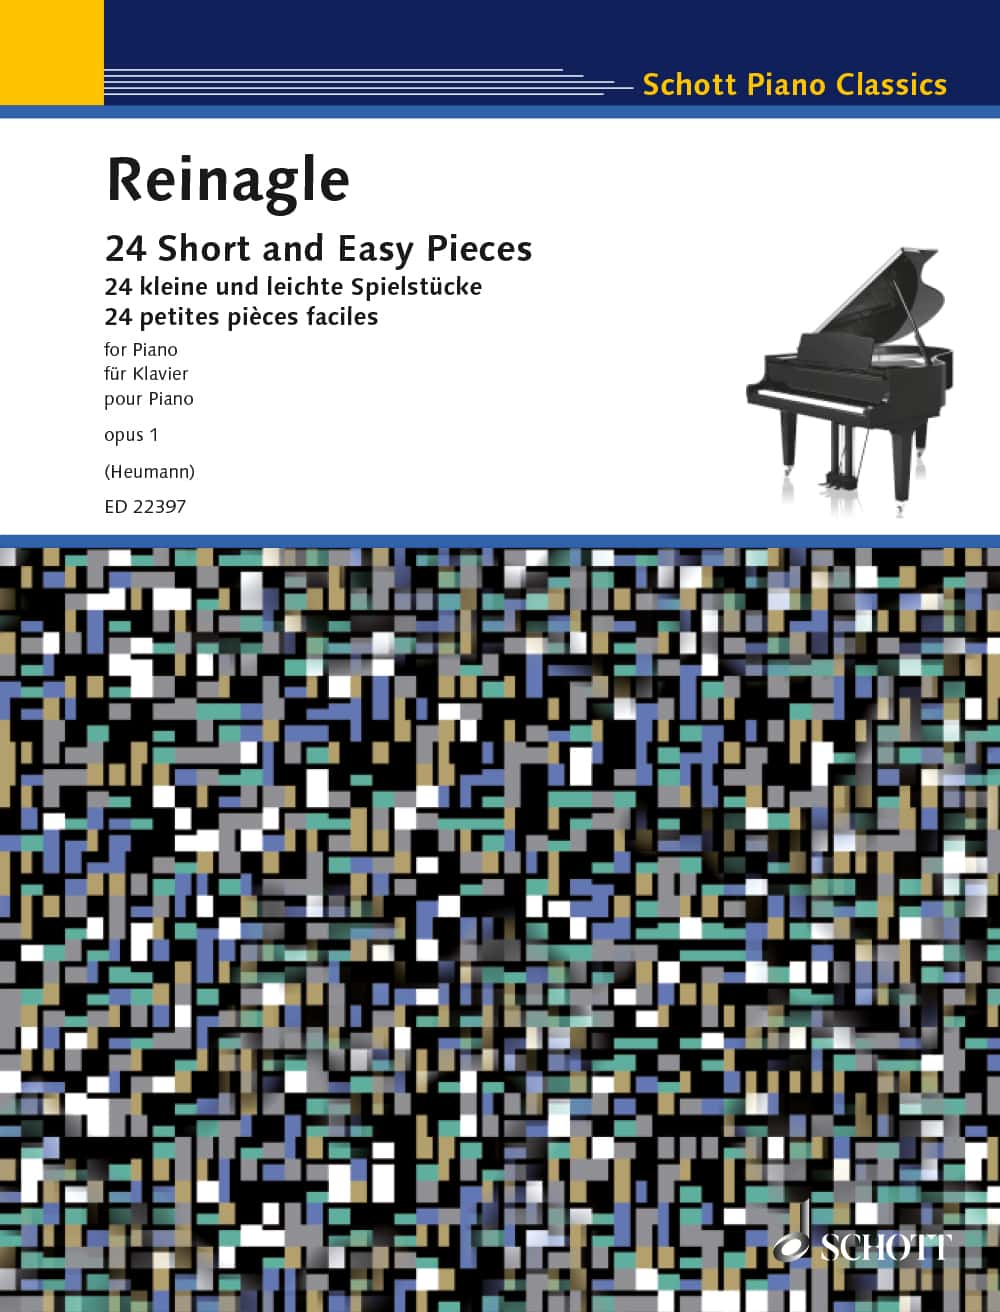 Reinagle: 24 Short And Easy Pieces op. 1